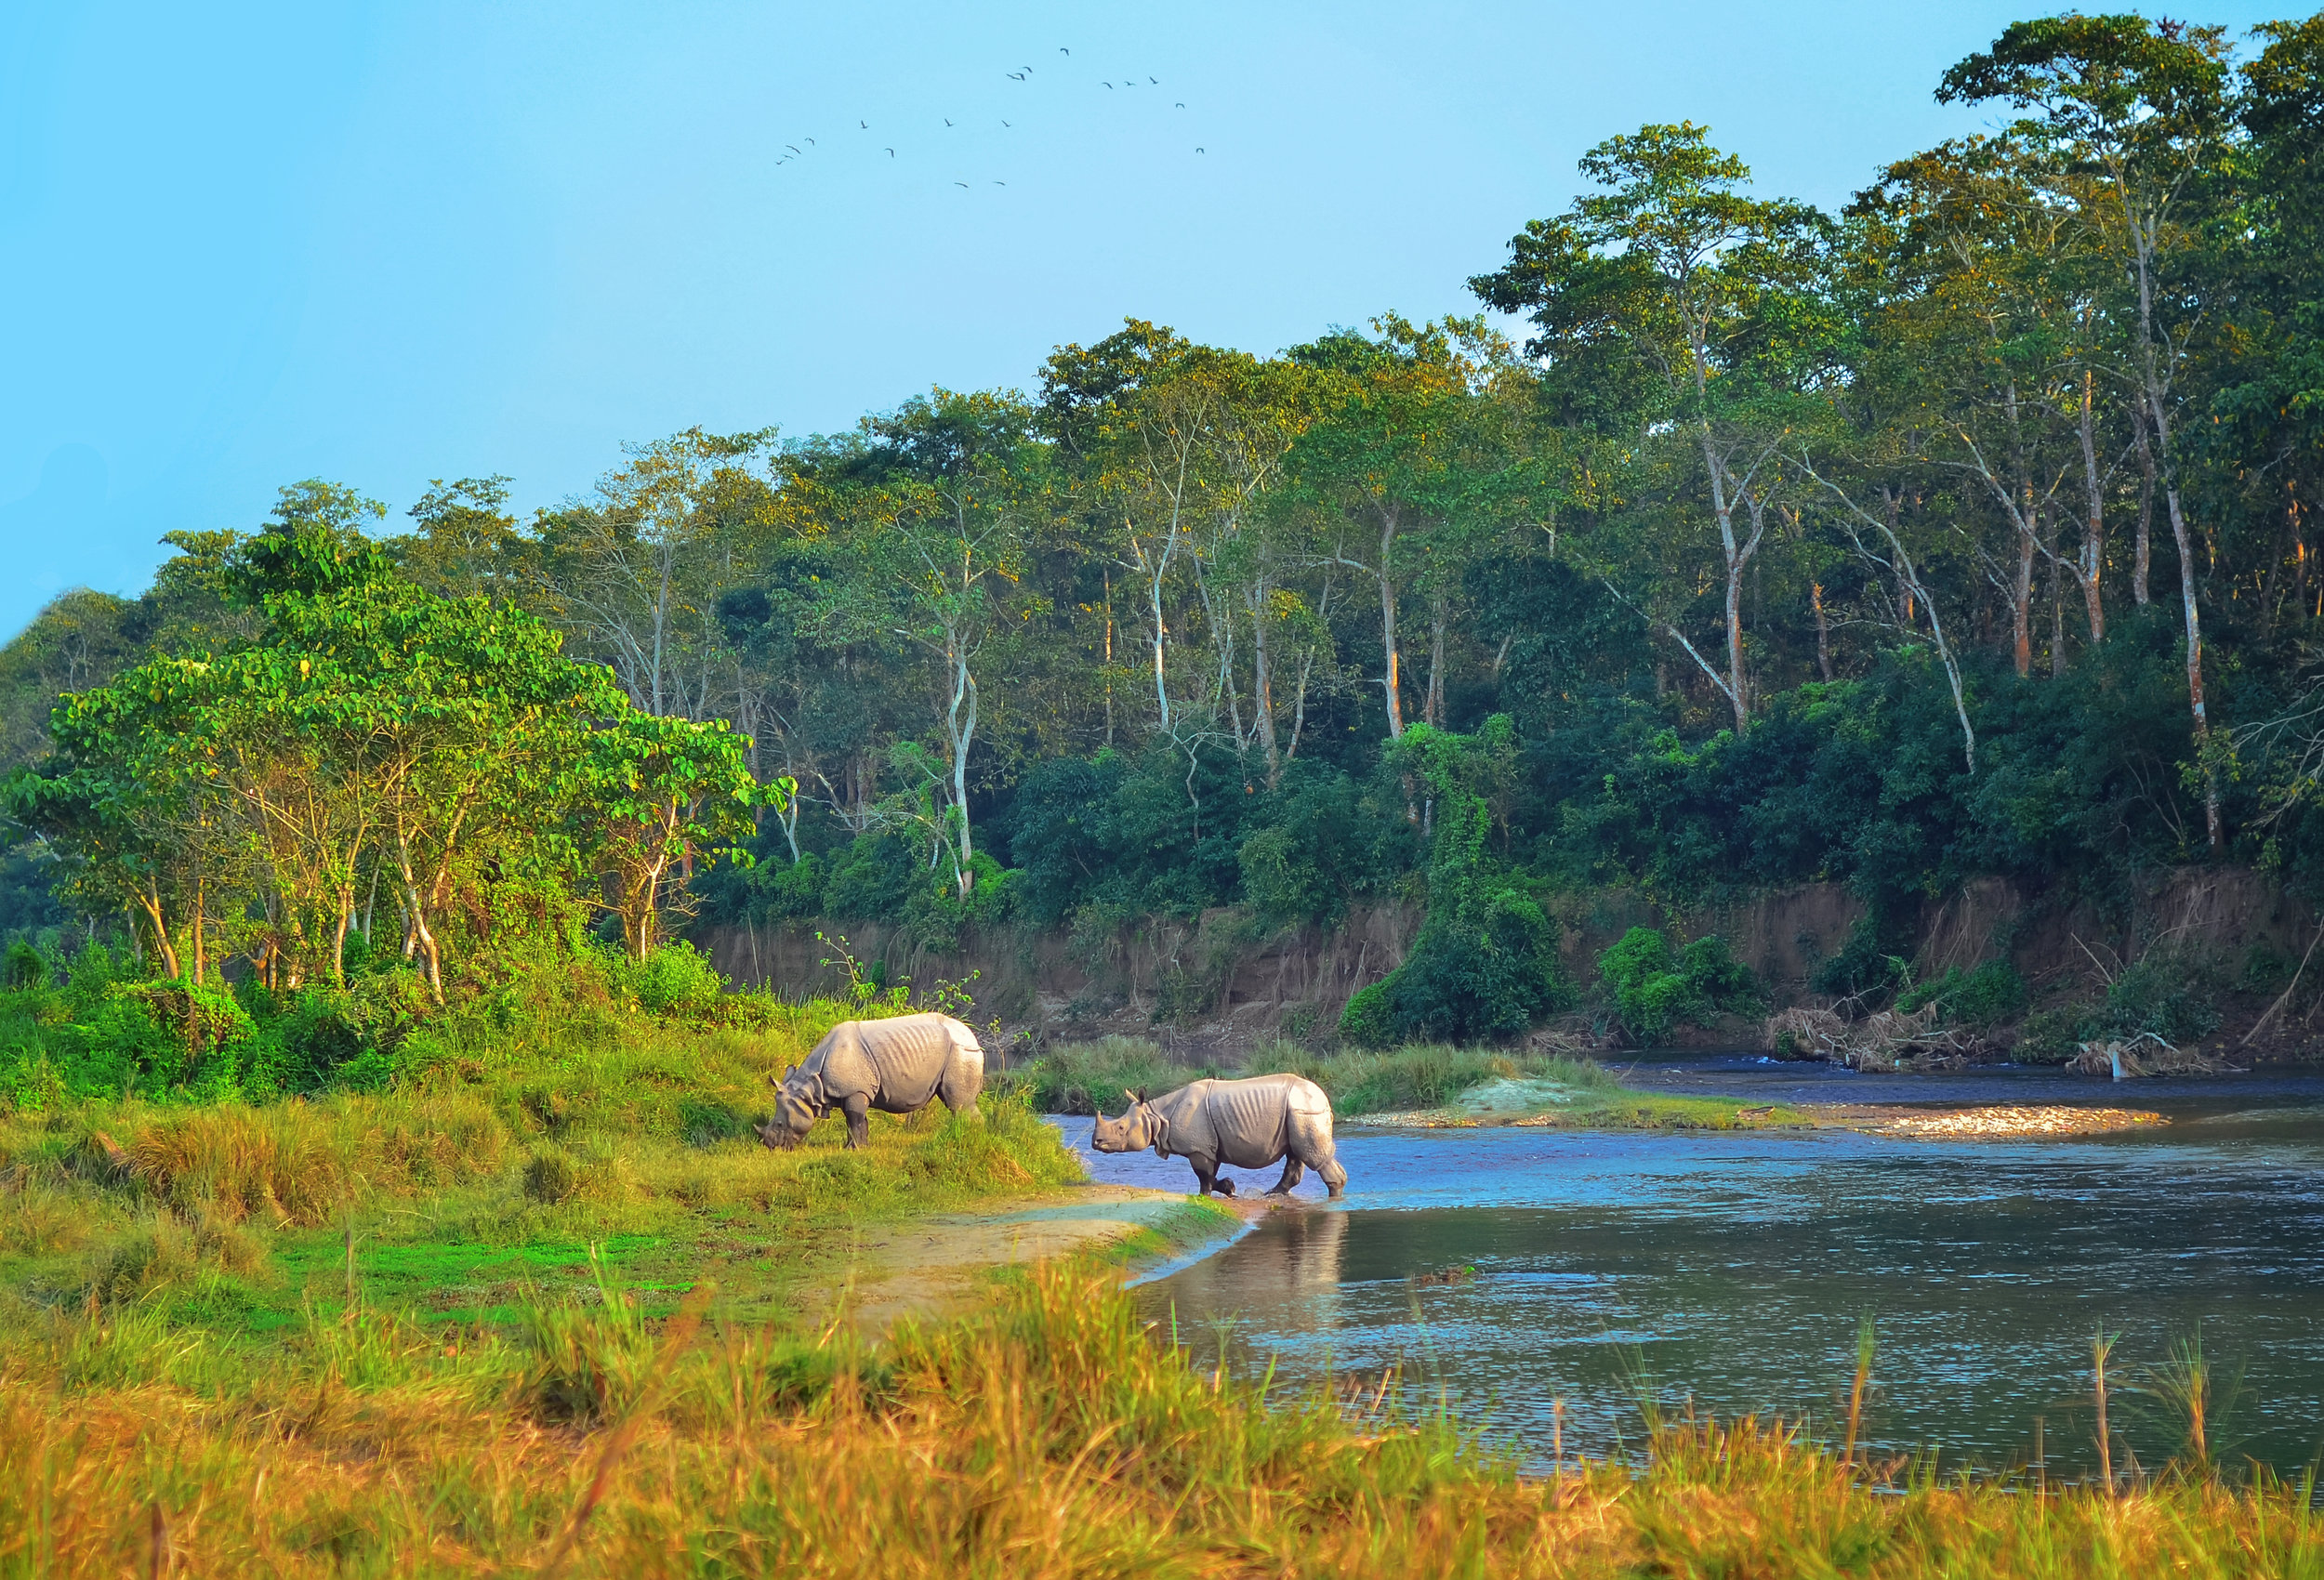 chitwan national park - jeep safari - Our Chitwan Safari has been newly revamped for 2018! You'll transfer to Chitwan National Park, one of the most impressive wildlife-viewing parks in Asia, for a Jeep Safari, and a visit to a local Tharu community on your first extension day.Trip Duration: 3 nights/ 4 daysReg. Fee: £95Balance Payment: £325